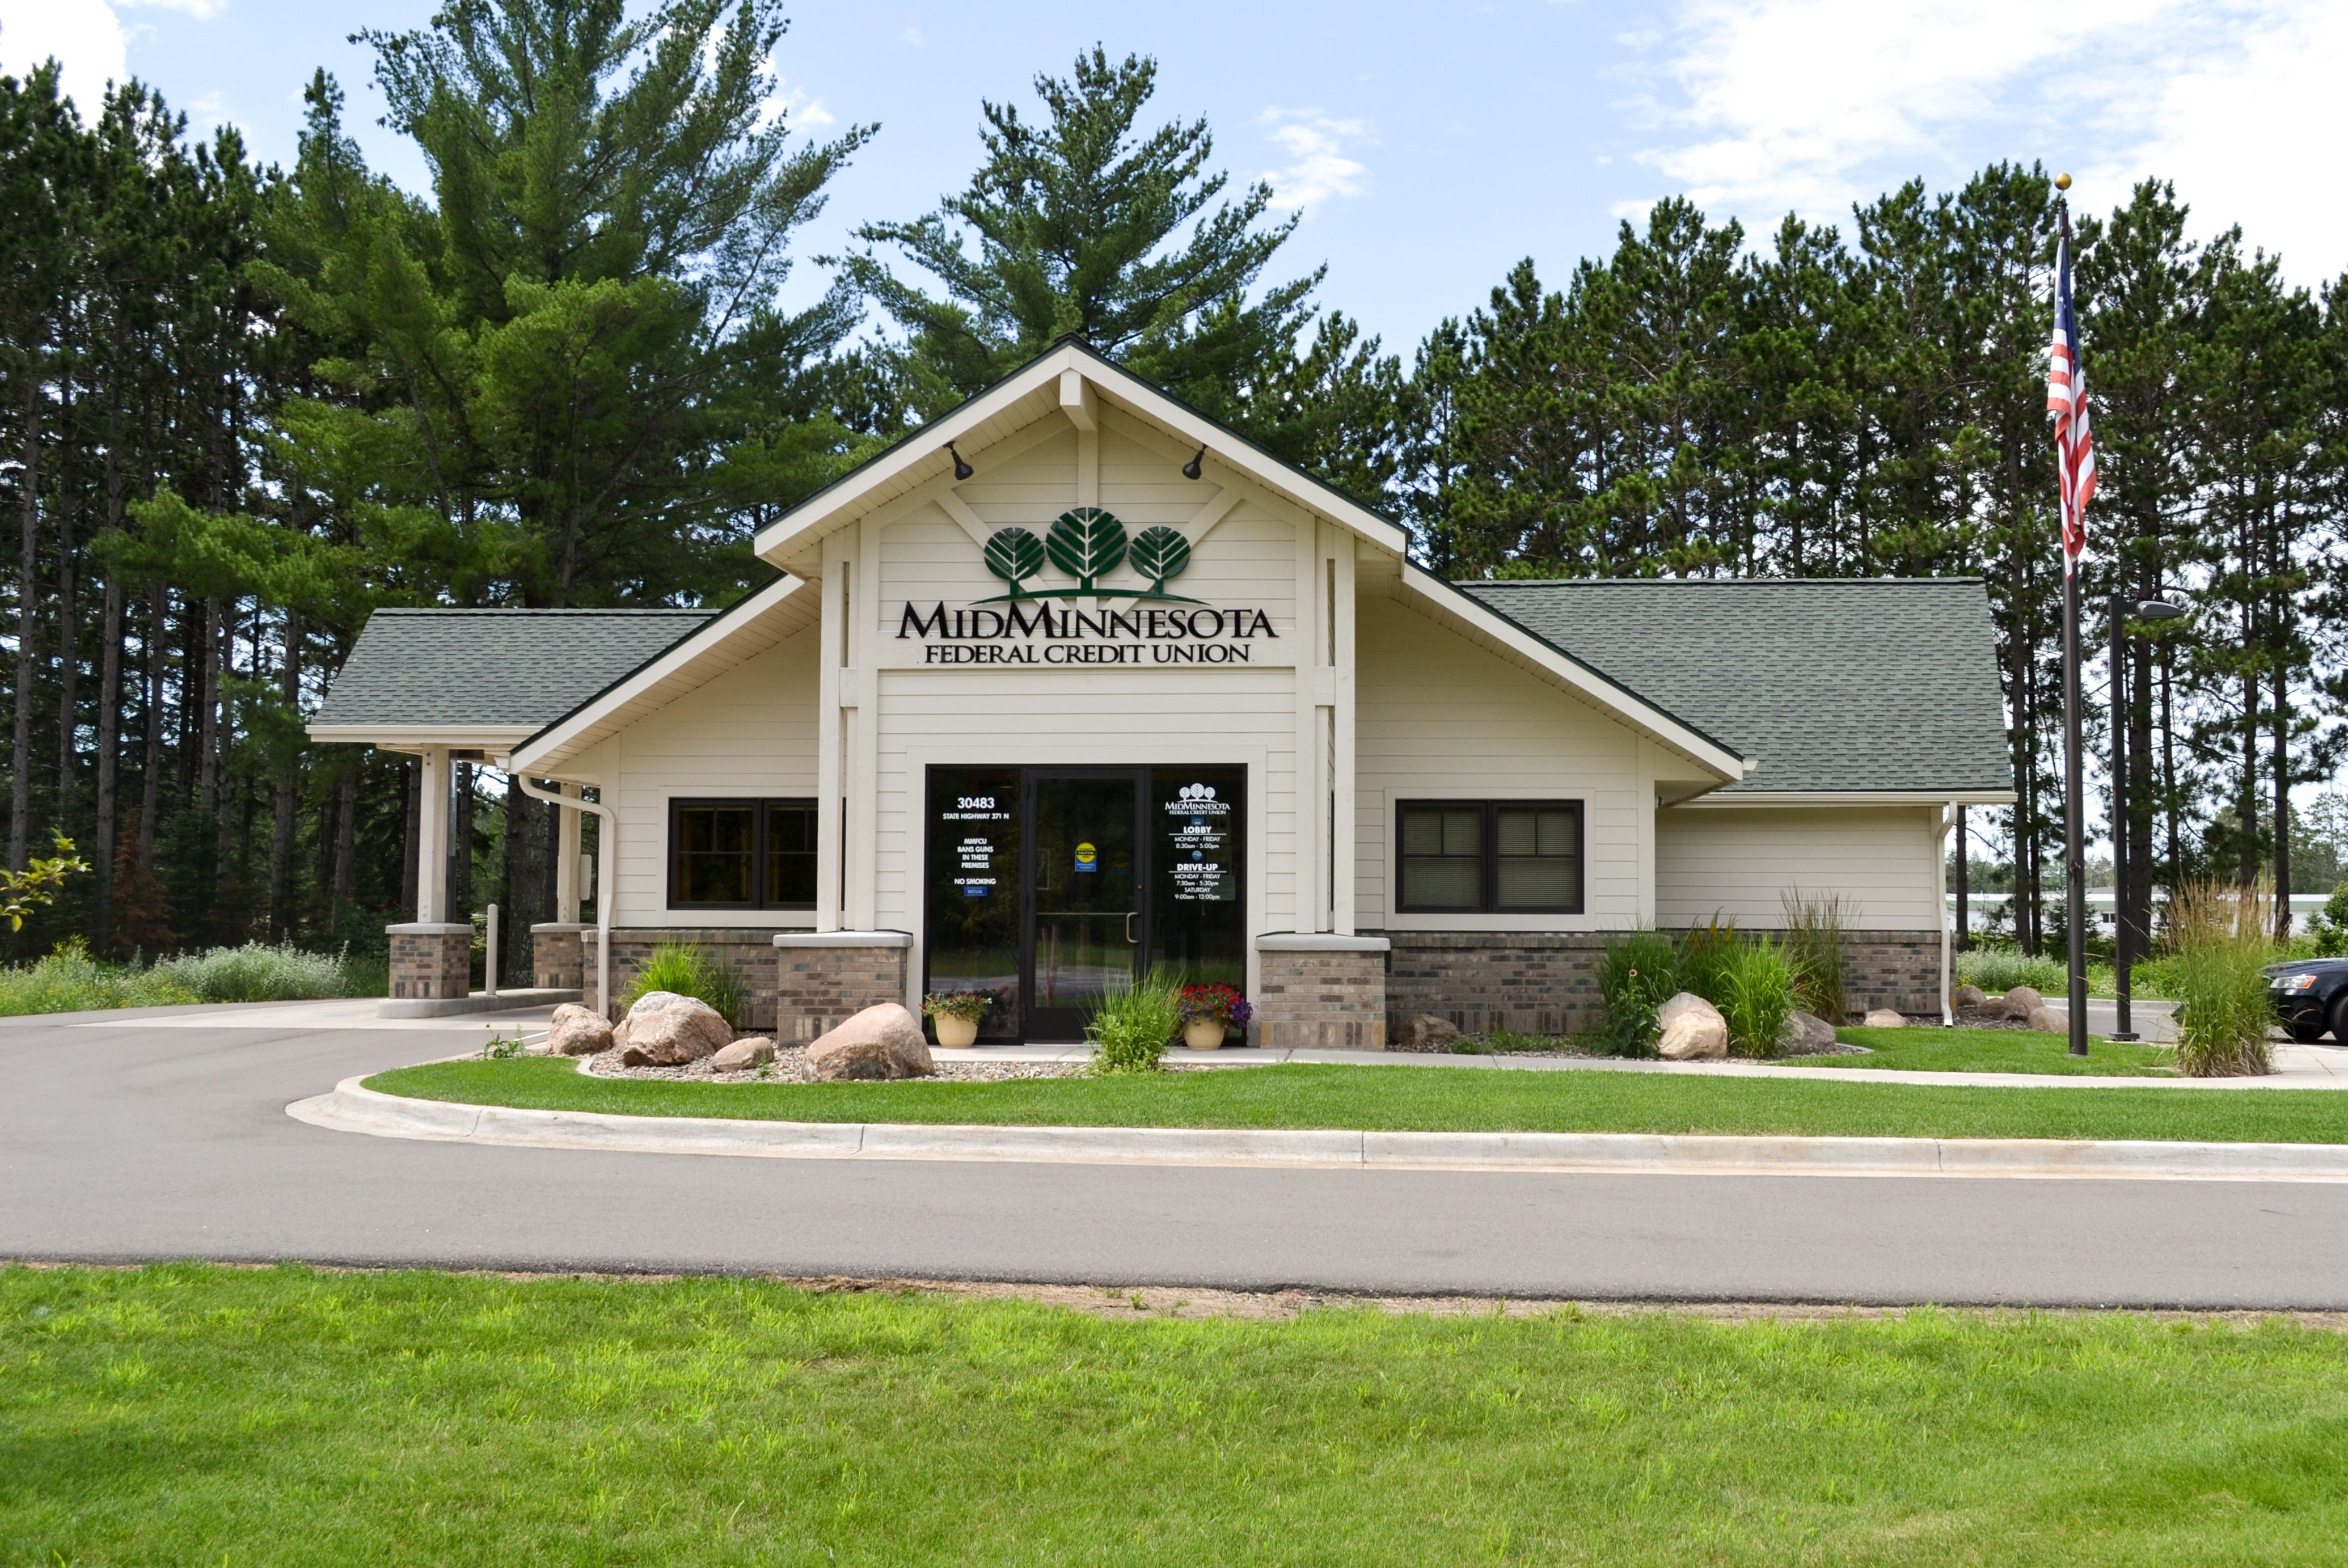 Our Pequot Lakes Location! MMFCU Federal credit union